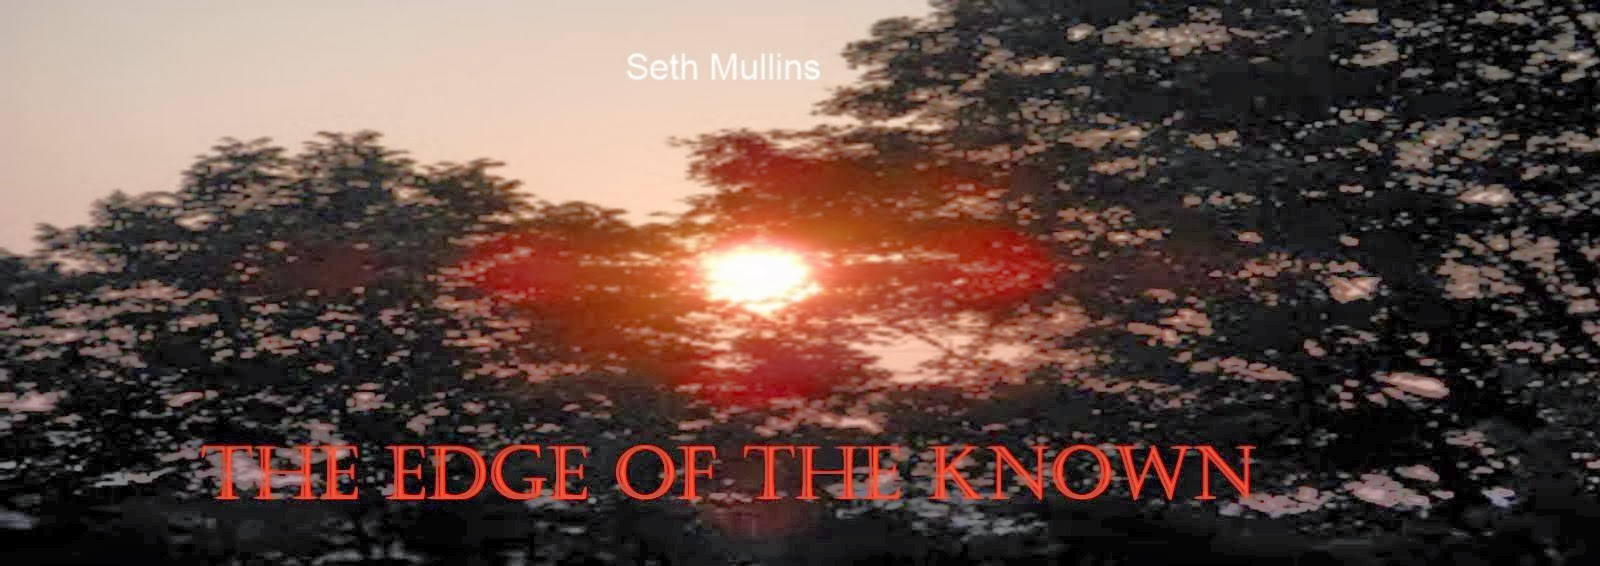 The Edge of the Known by Seth Mullins